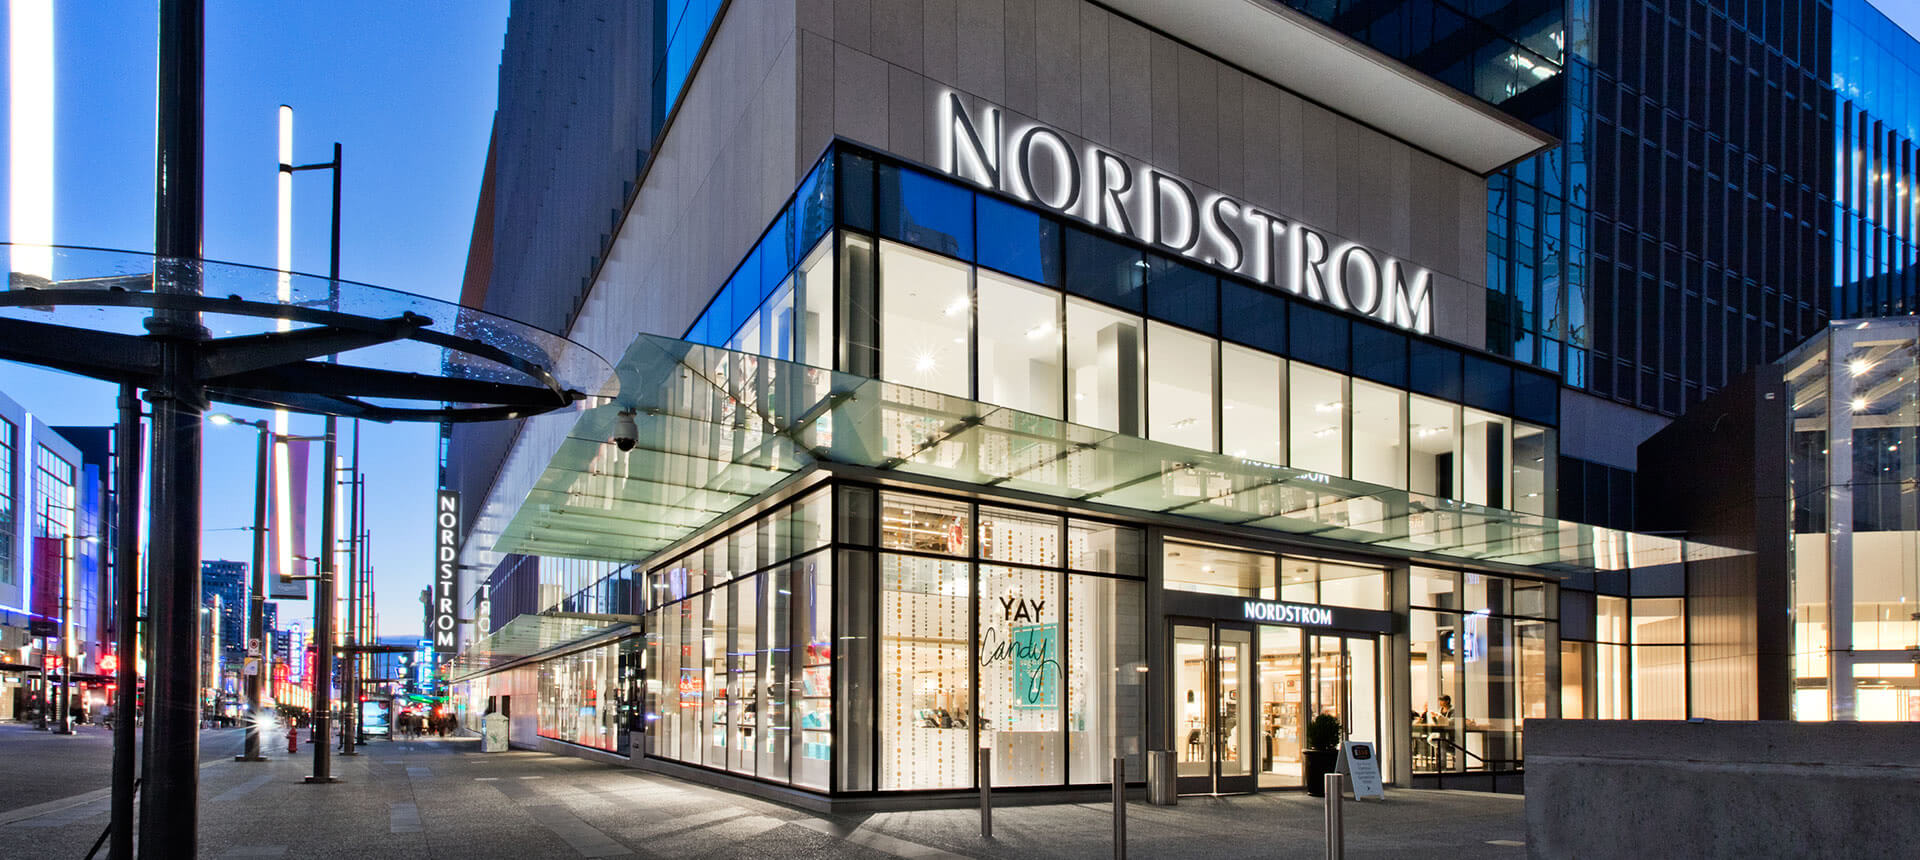 NORDSTROM|Store Address List St # Store Name Address City, State Zip Phone Downtown Seattle Pine Street Seattle, WA Northgate N.E. Northgate Way Seattle, WA